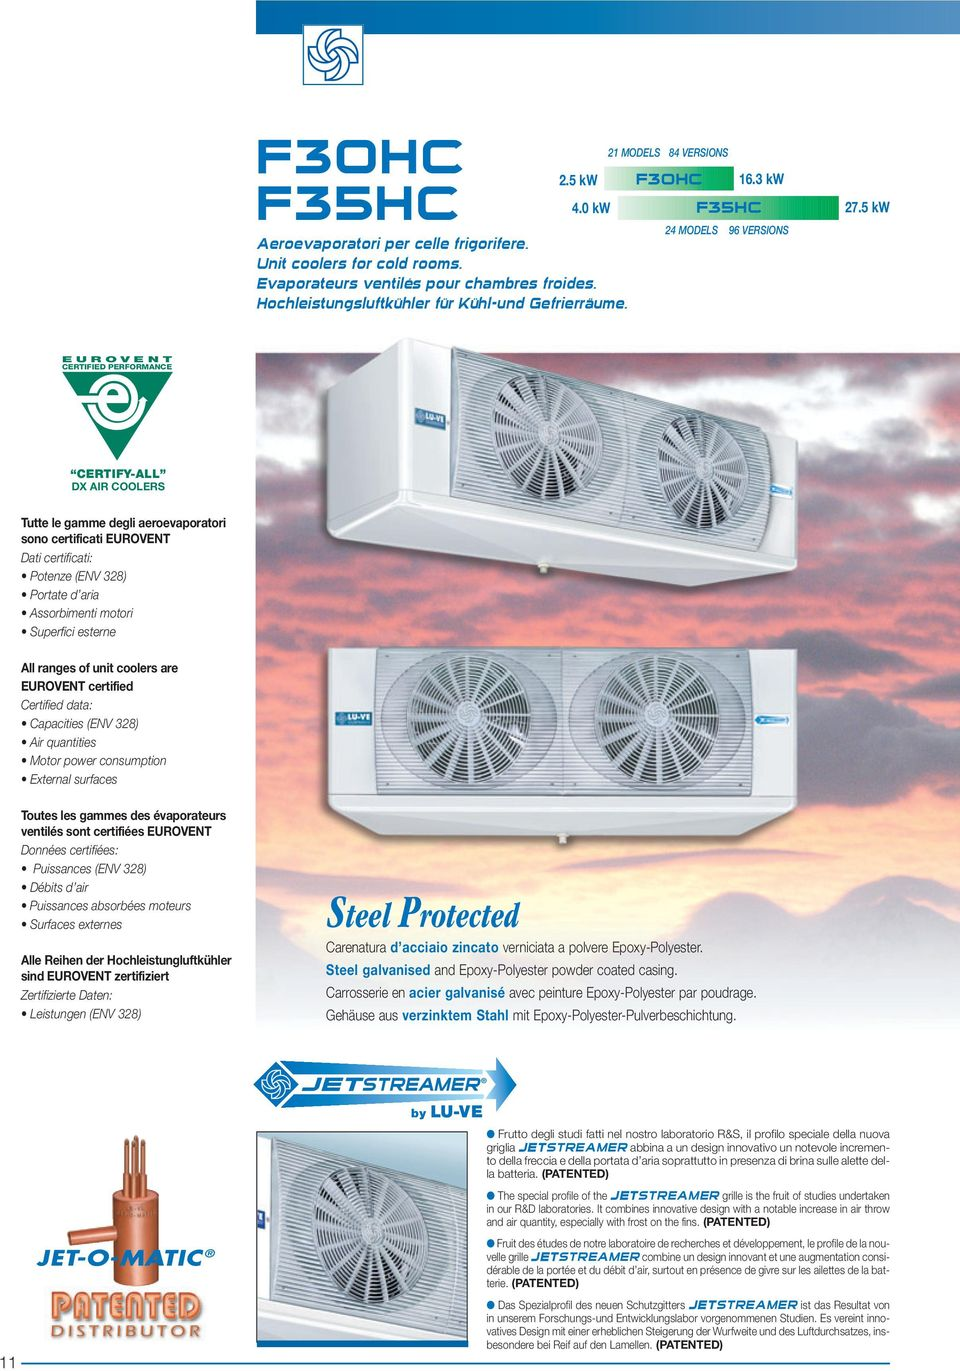 5 kw 24 MODELS 96 VERSIONS EUROVENT CERTIFIED PERFORMANCE CERTIFY-ALL DX AIR COOLERS Tutte le gamme degli aeroevaporatori sono certificati EUROVENT Dati certificati: Potenze (ENV 328) Portate d aria